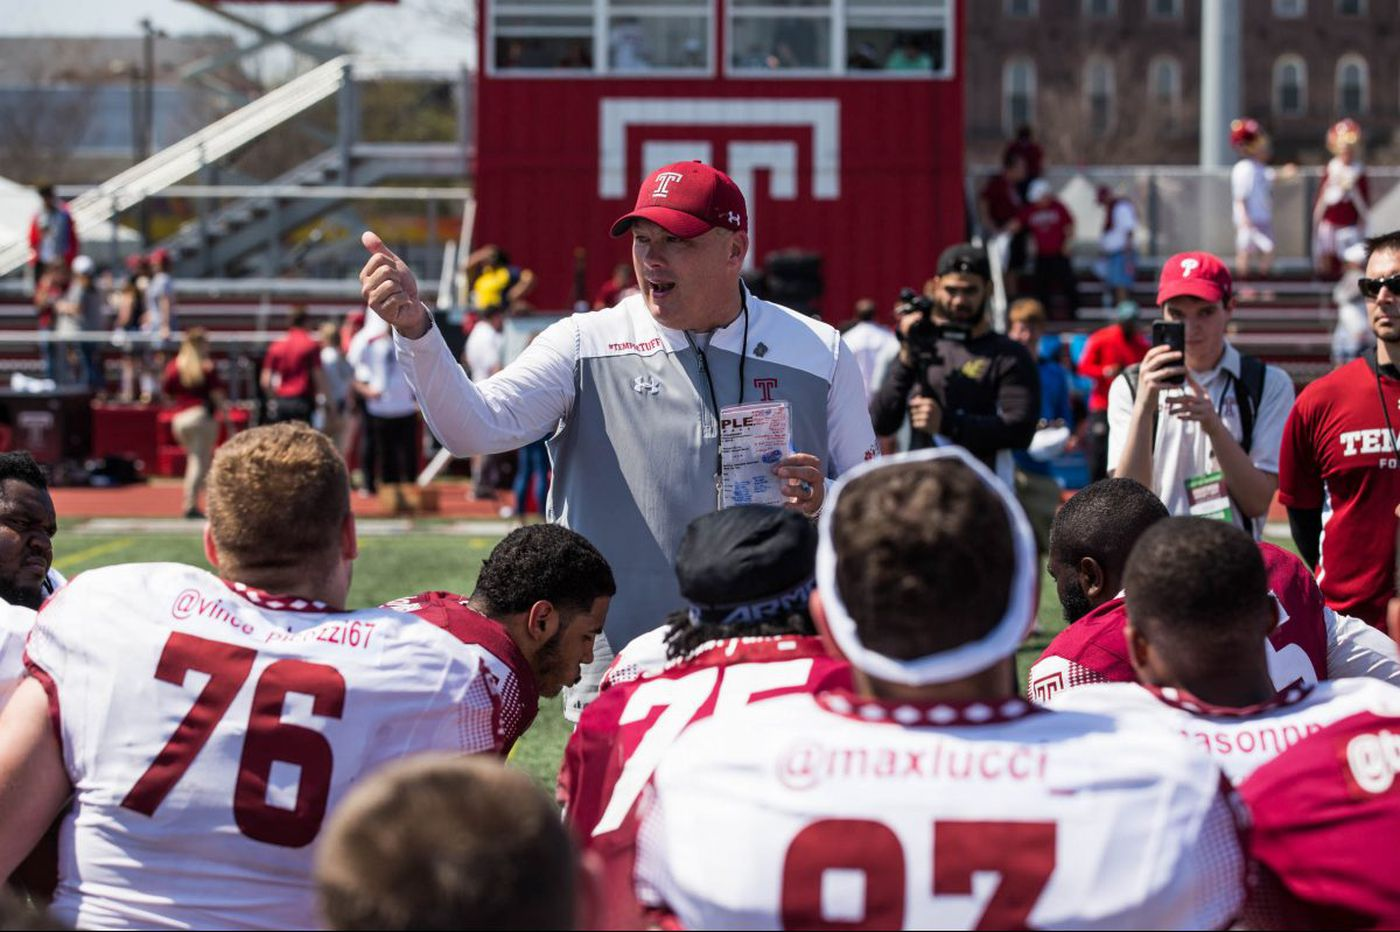 Geoff Collins, Temple football players heading to Japan this week